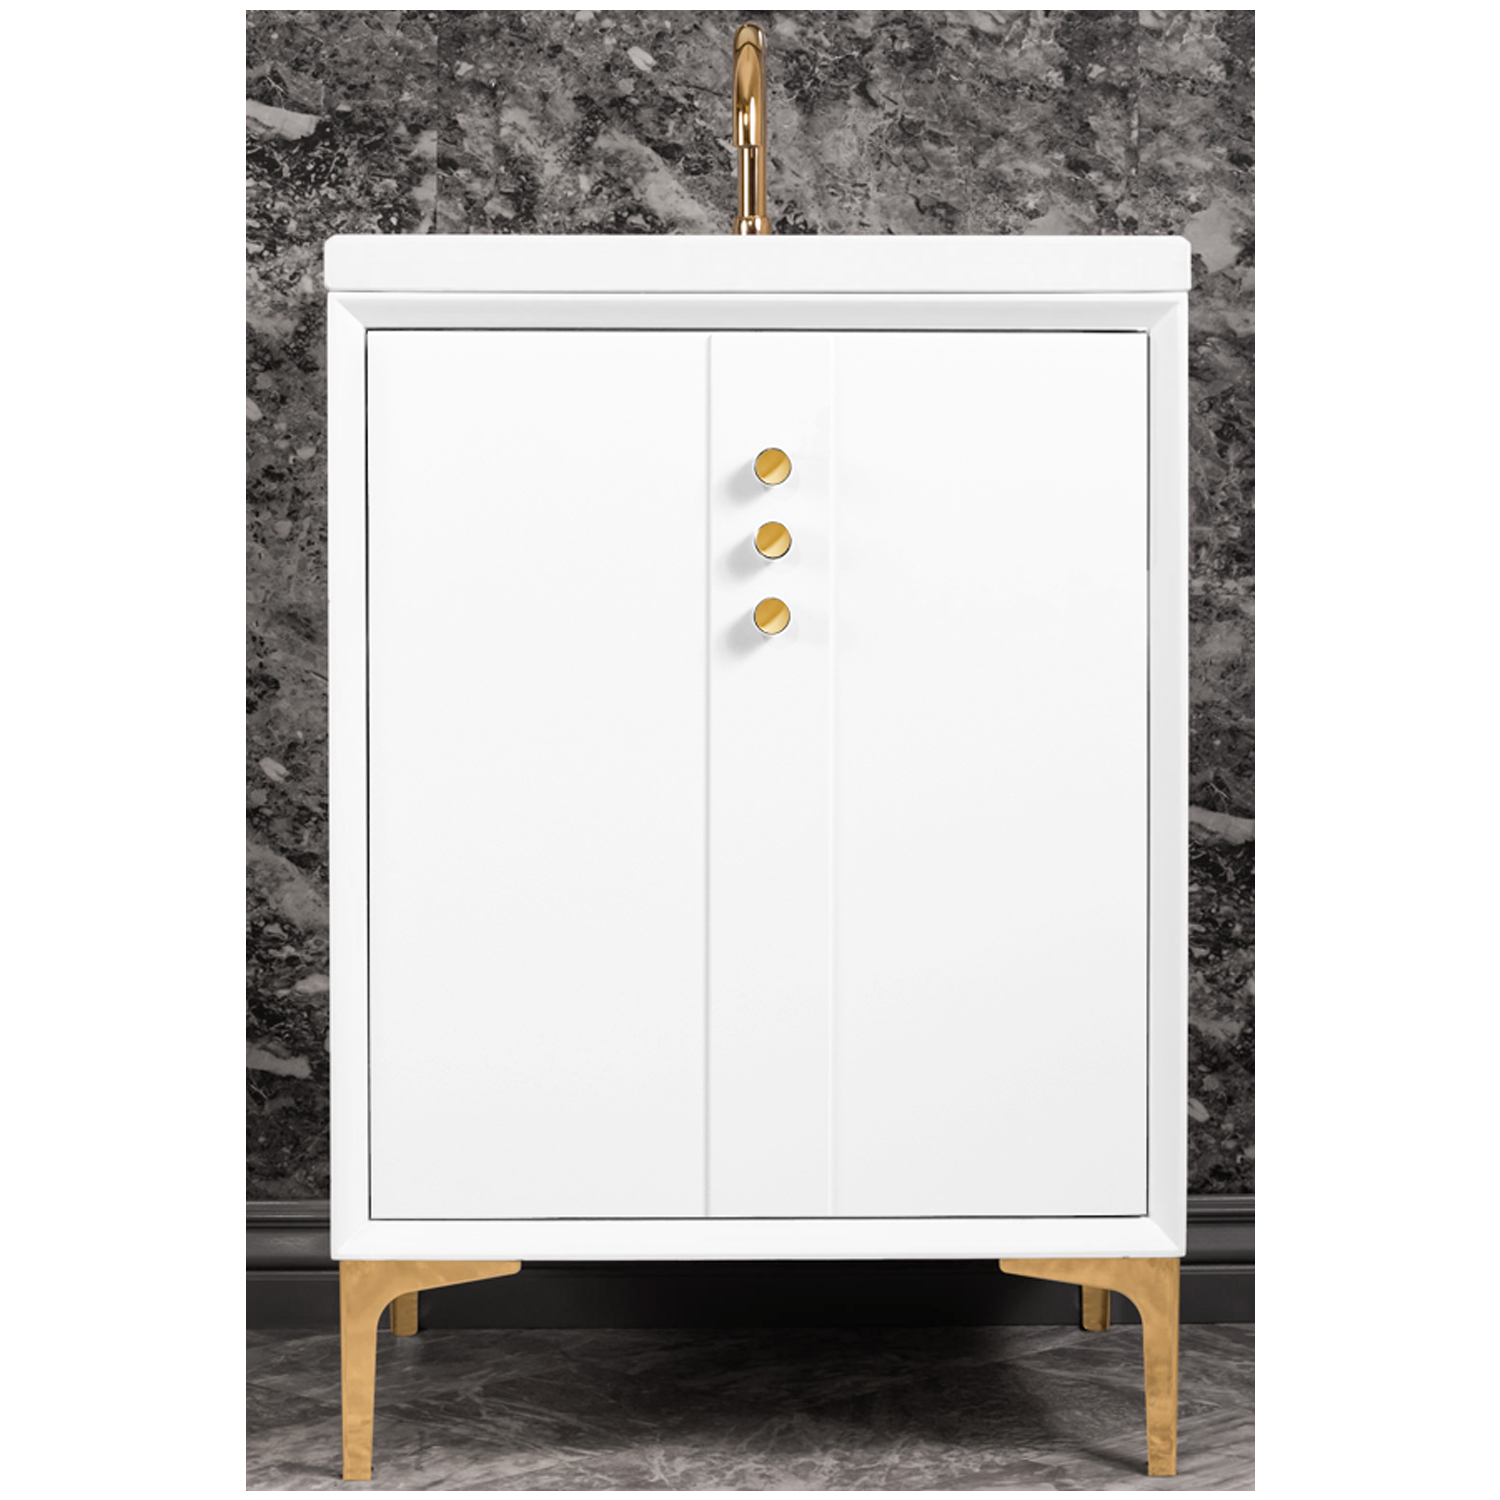 "VAN24W-009   24"" White Tuxedo with Buttons - Shown with PB (Polished Brass Finish)"